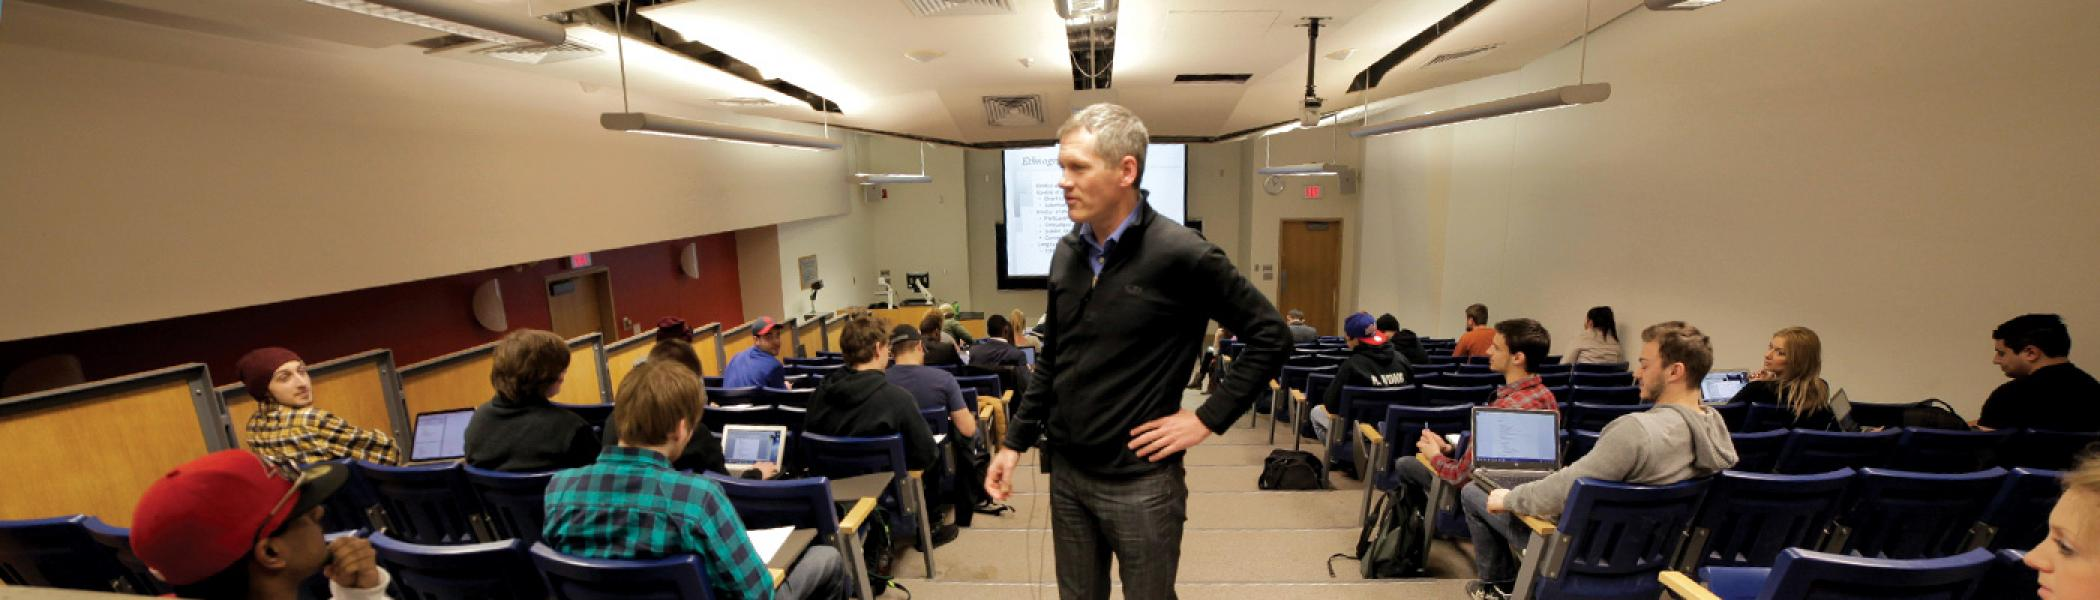 Professor Ray Dart standing in a lecture hall talking with seated students